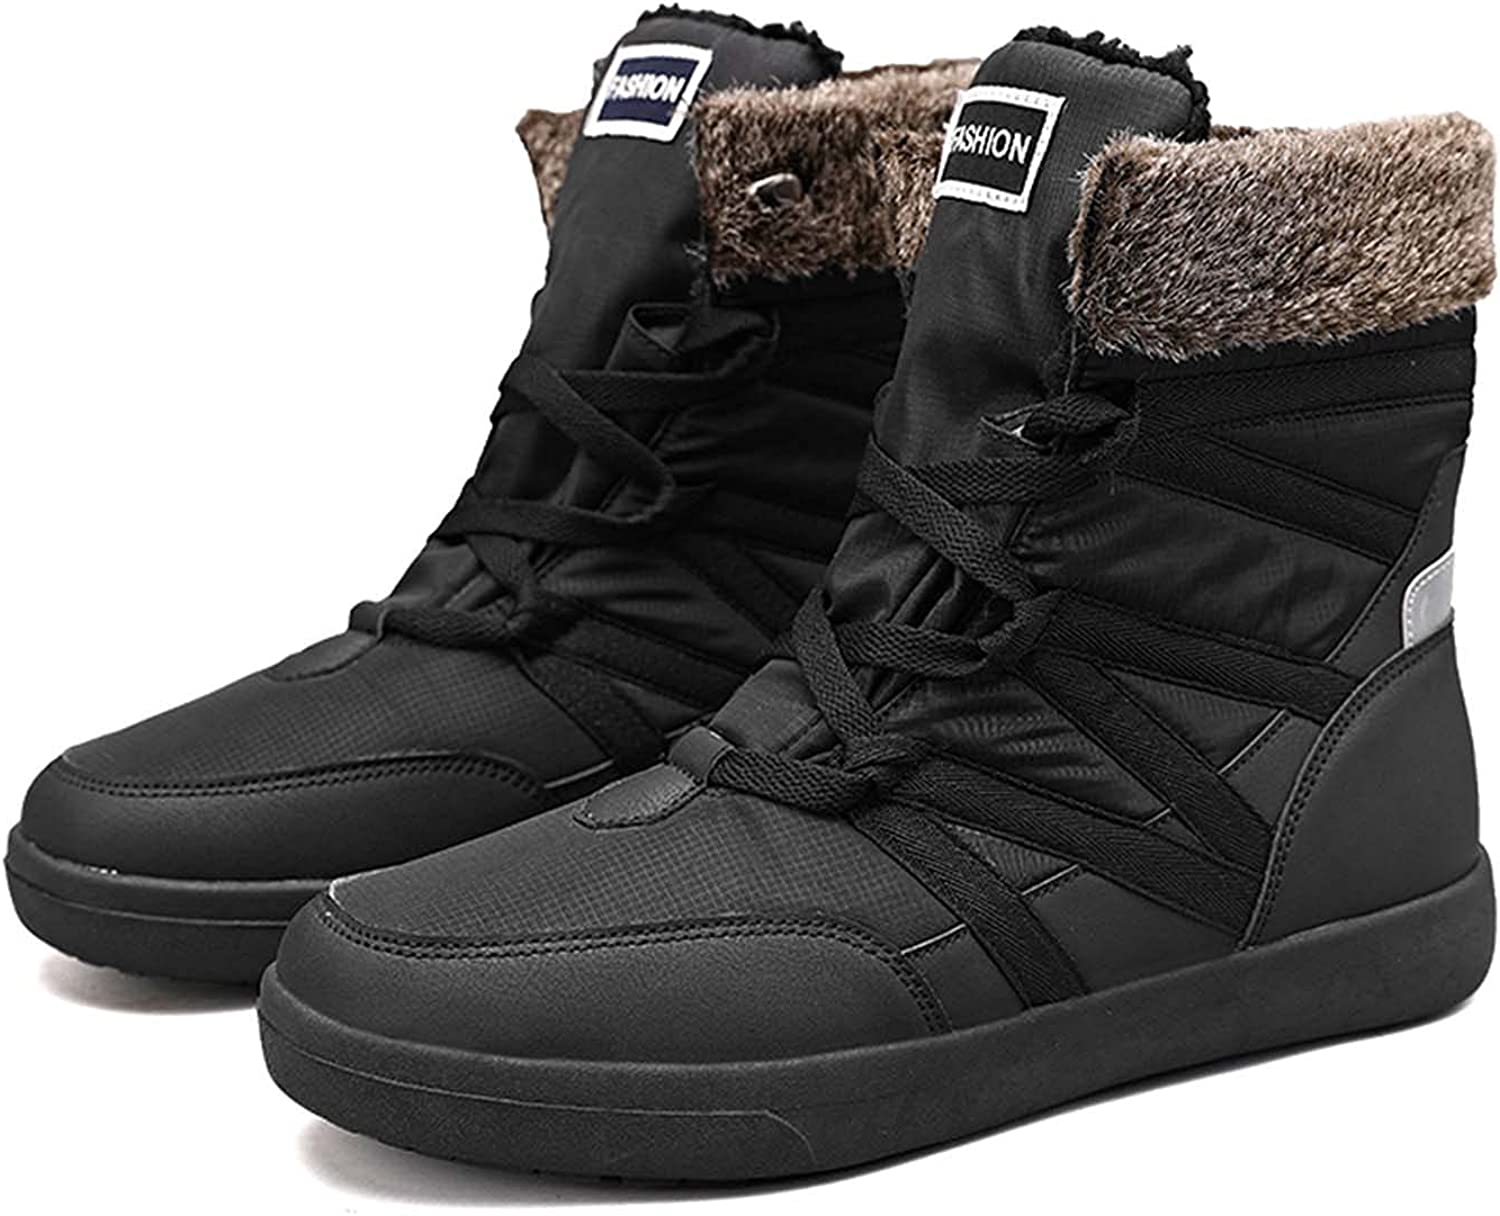 Womens Winter Snow Boots Waterproof Slip Resistant Ankle Boots Outdoor High Top Sneakers